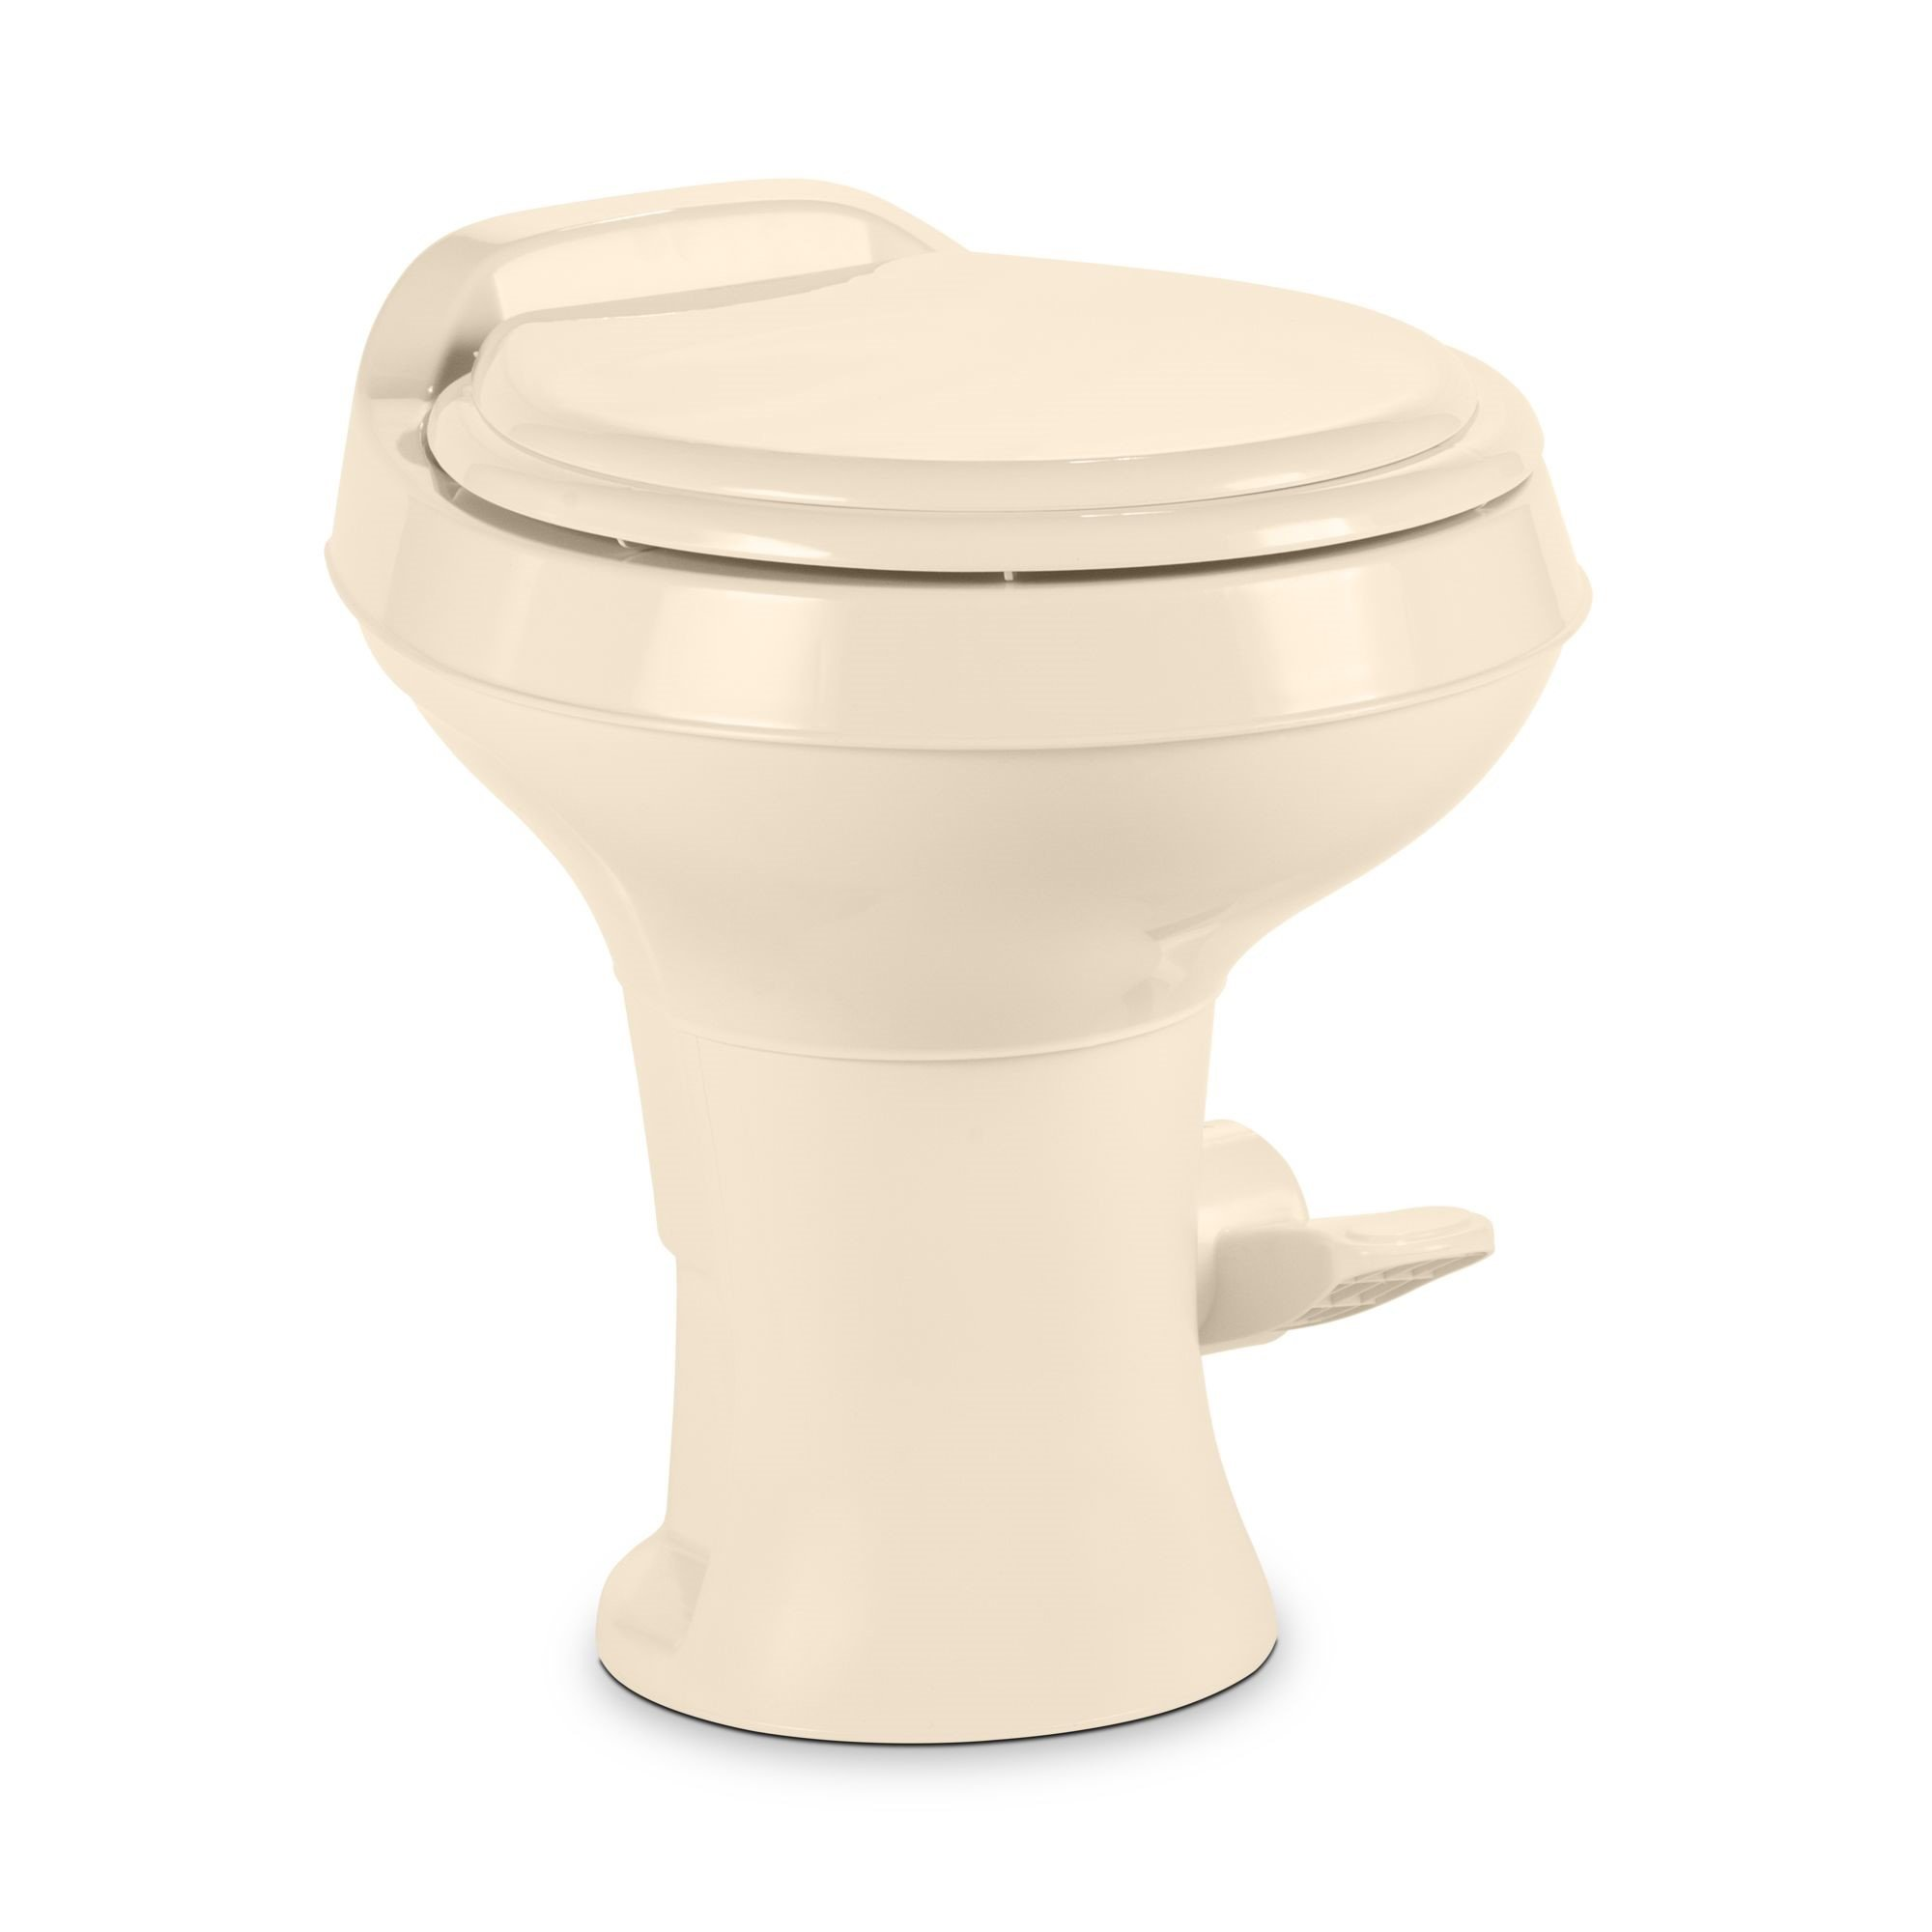 Dometic 300 Series Standard Height Toilet w/ Hand Spray, Bone